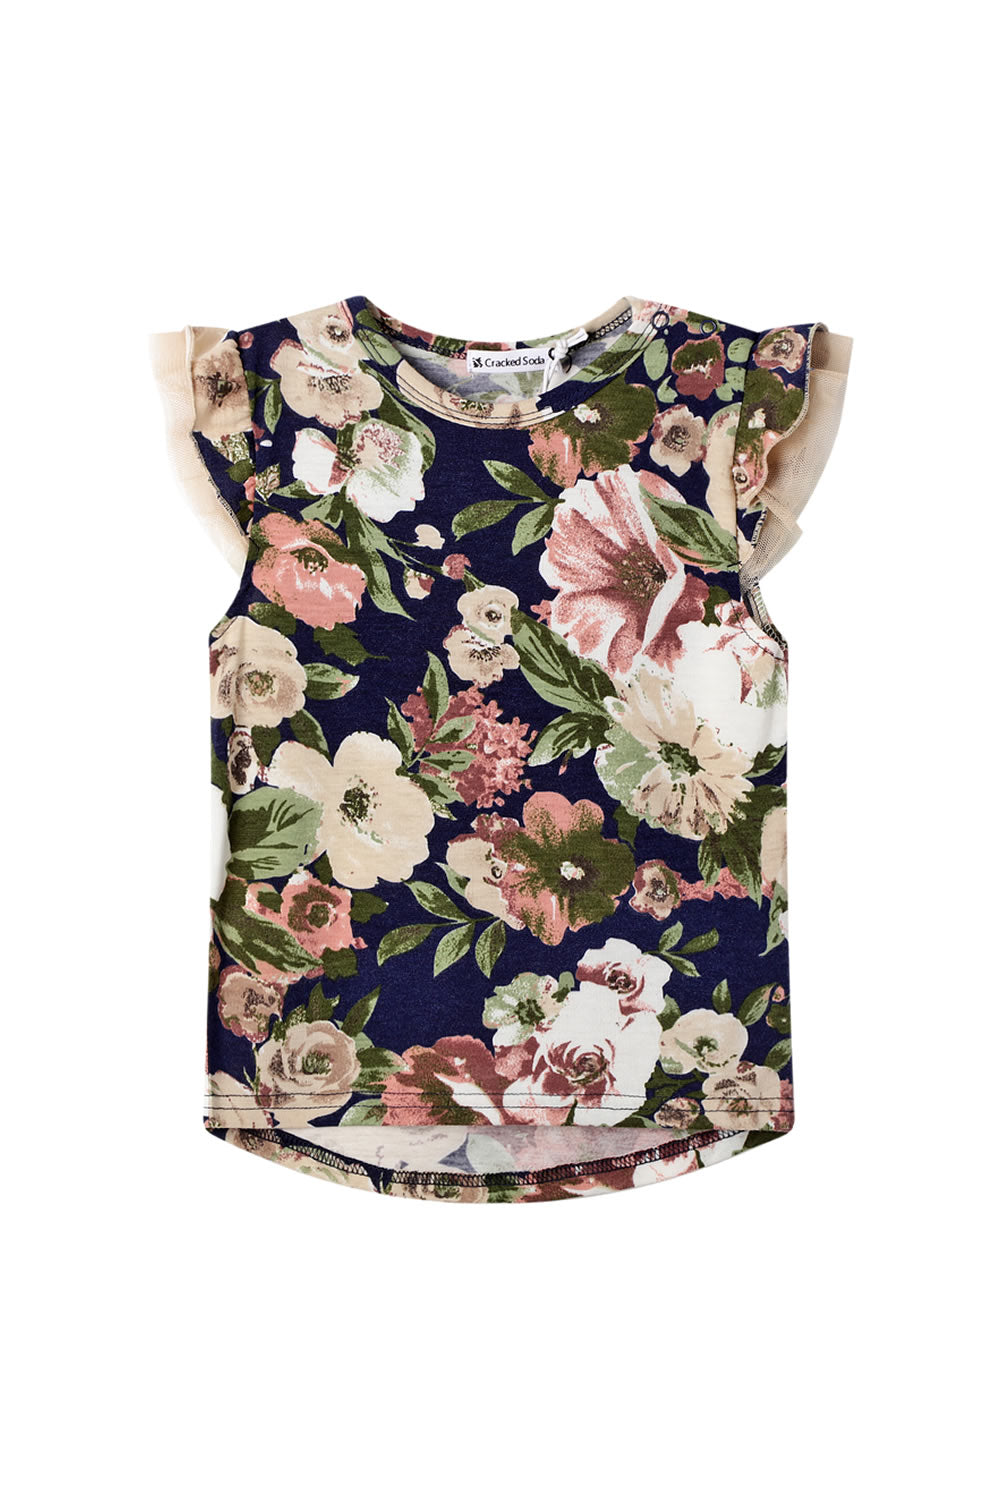 Cracked Soda Floral Frill Top